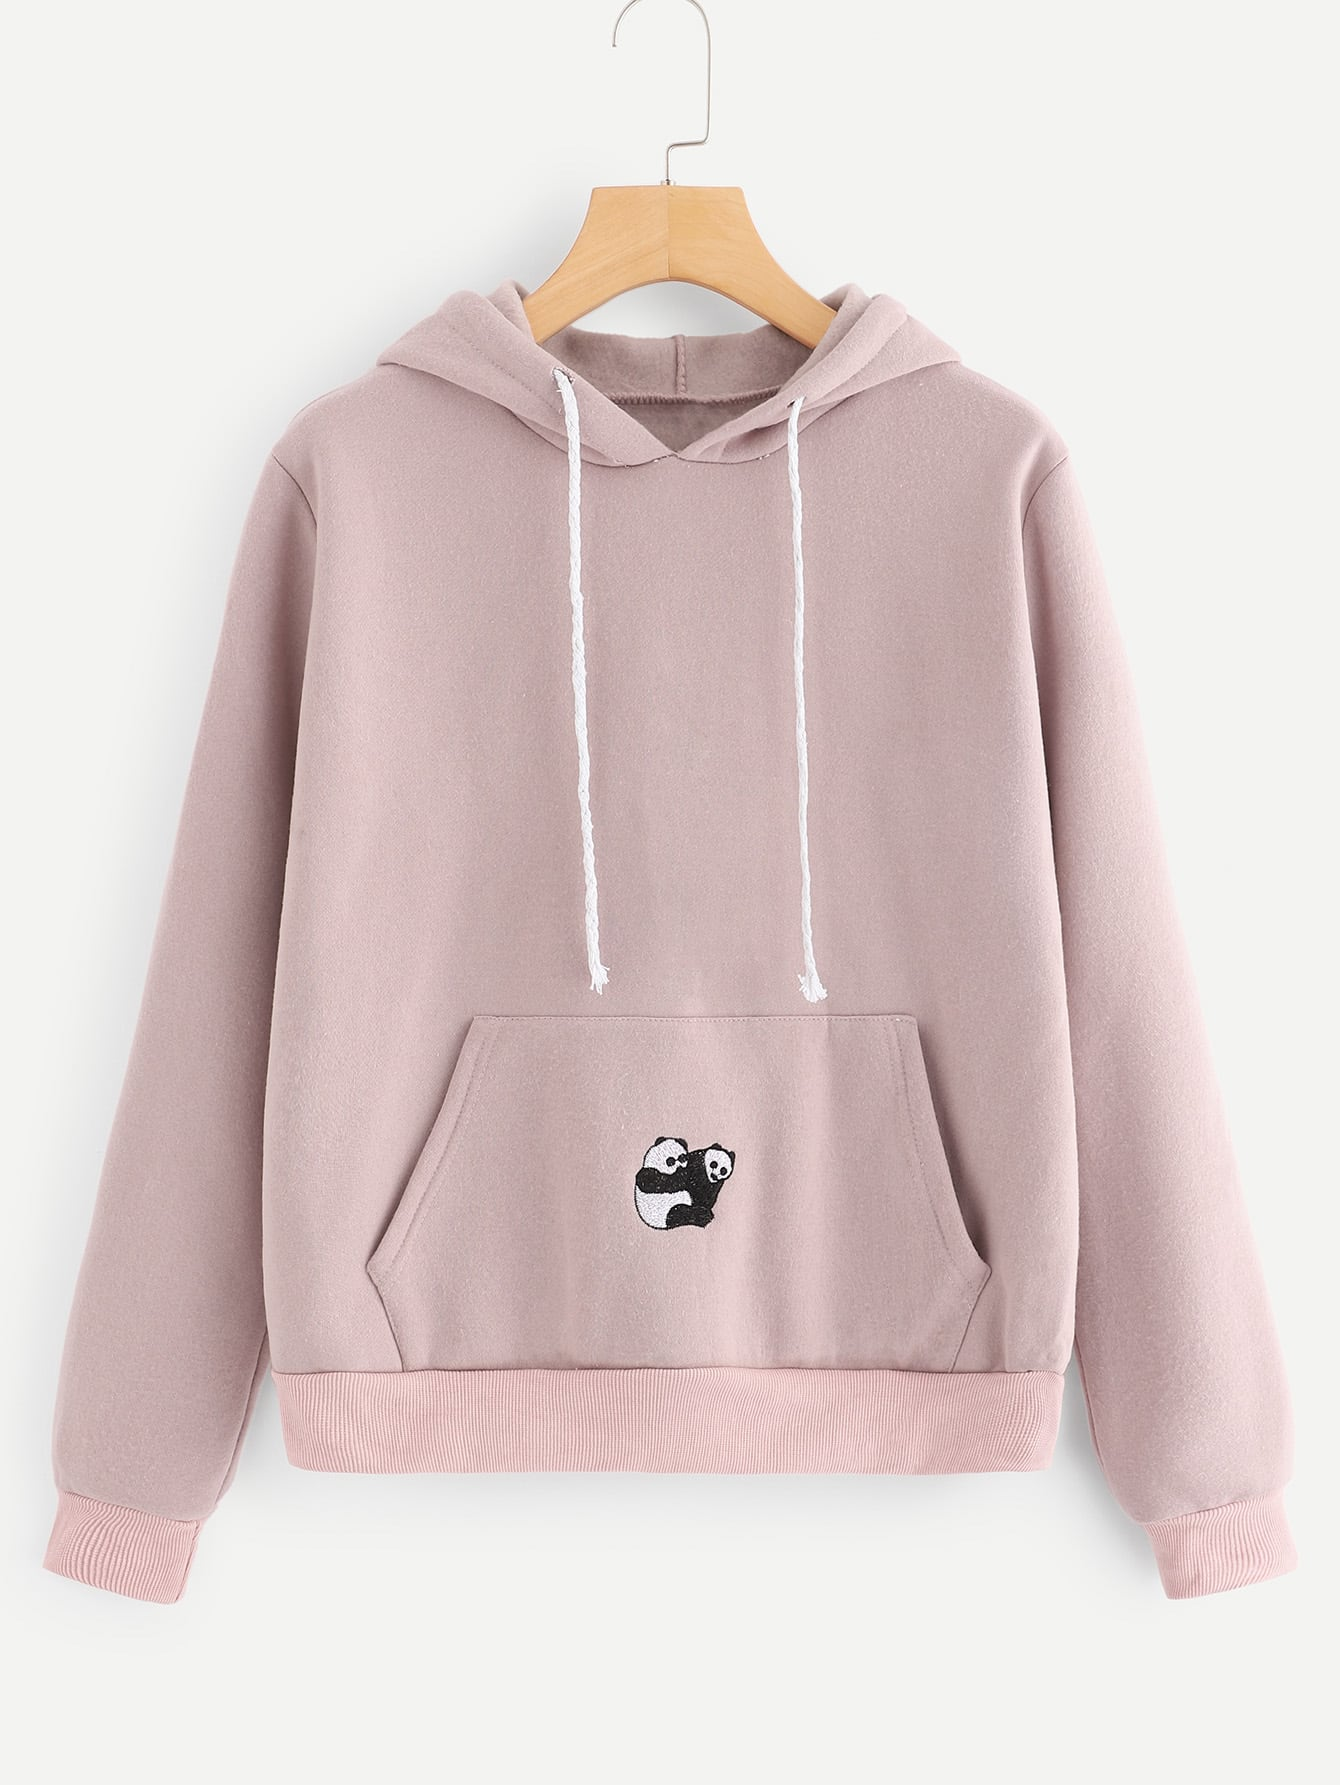 Letter And Panda Embroidery Hoodie Letter And Panda Embroidery Hoodie